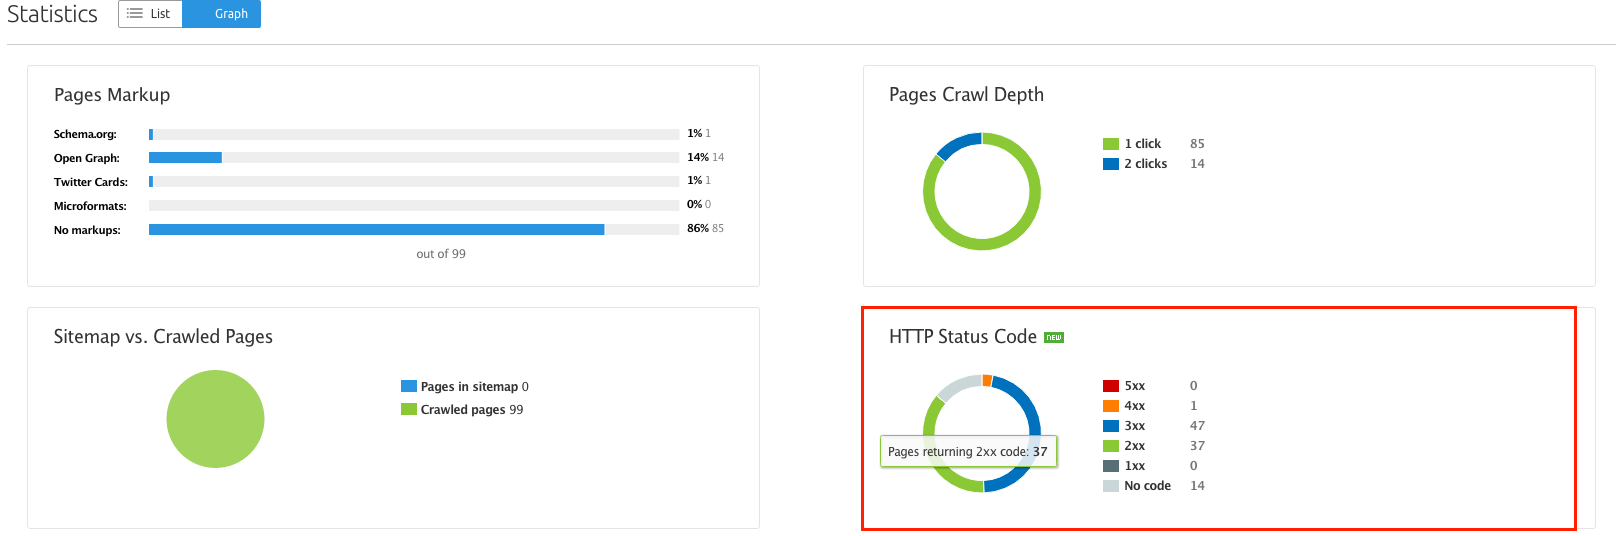 SEMrush: Site Audit: HTTP Status Code Distribution Widget image 2